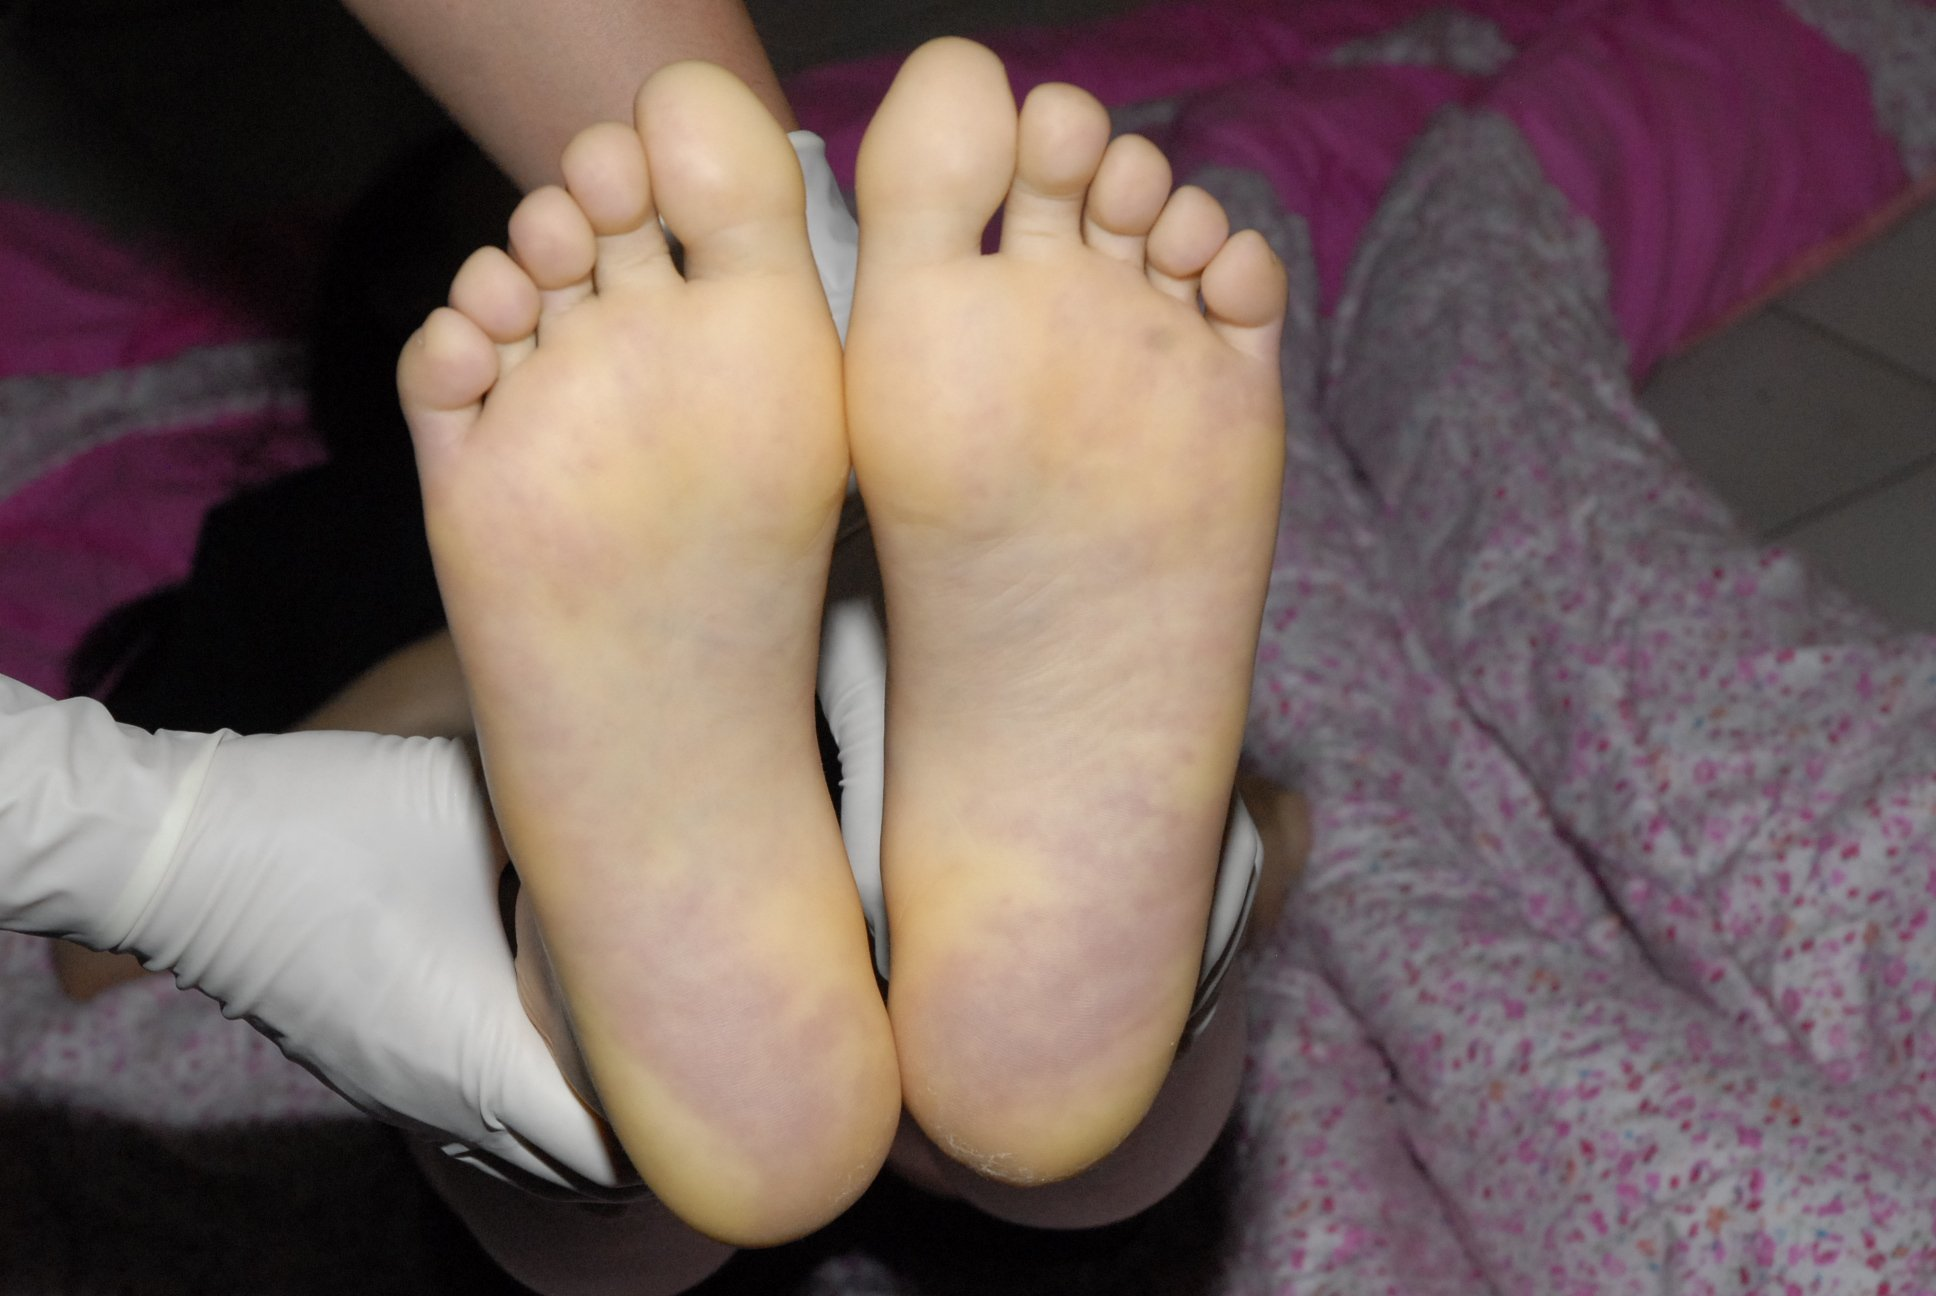 Cadaveric spots on the foot